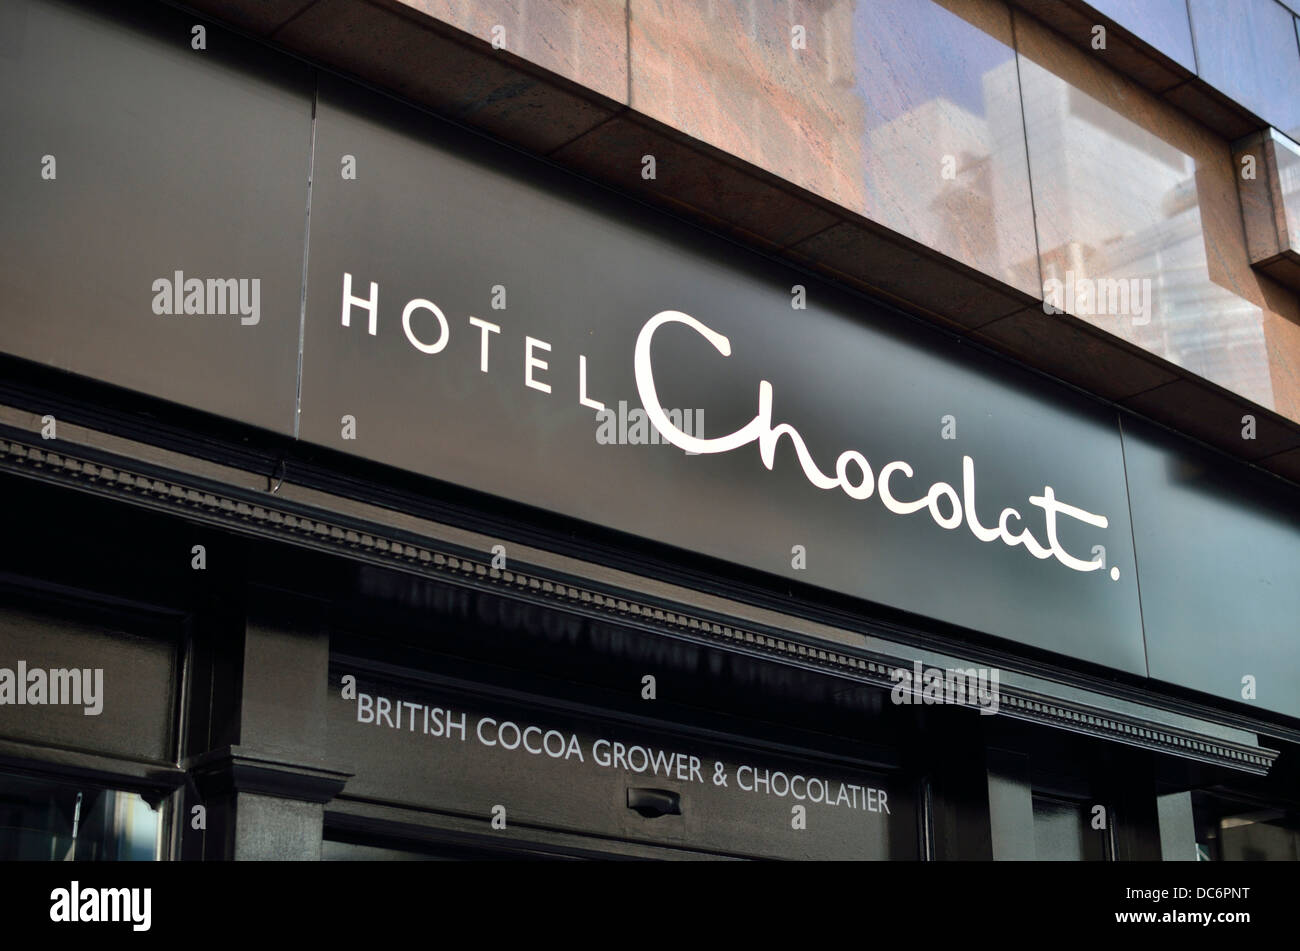 Hotel Chocolat chocolate store in Moorgate, London, UK. - Stock Image